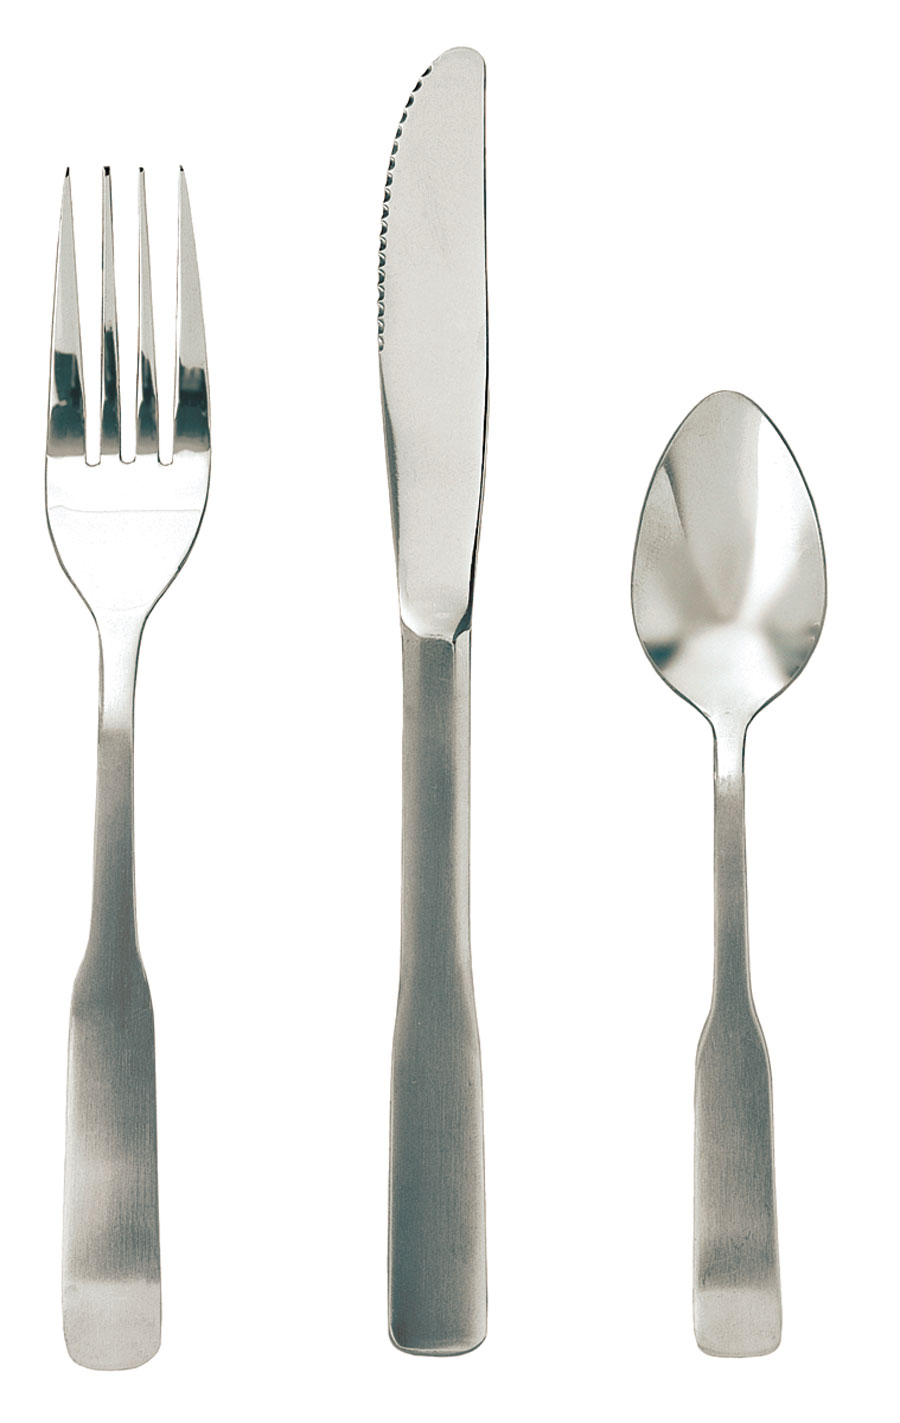 Update International WA-306 Washington Heavy Weight Salad Fork - 1 doz